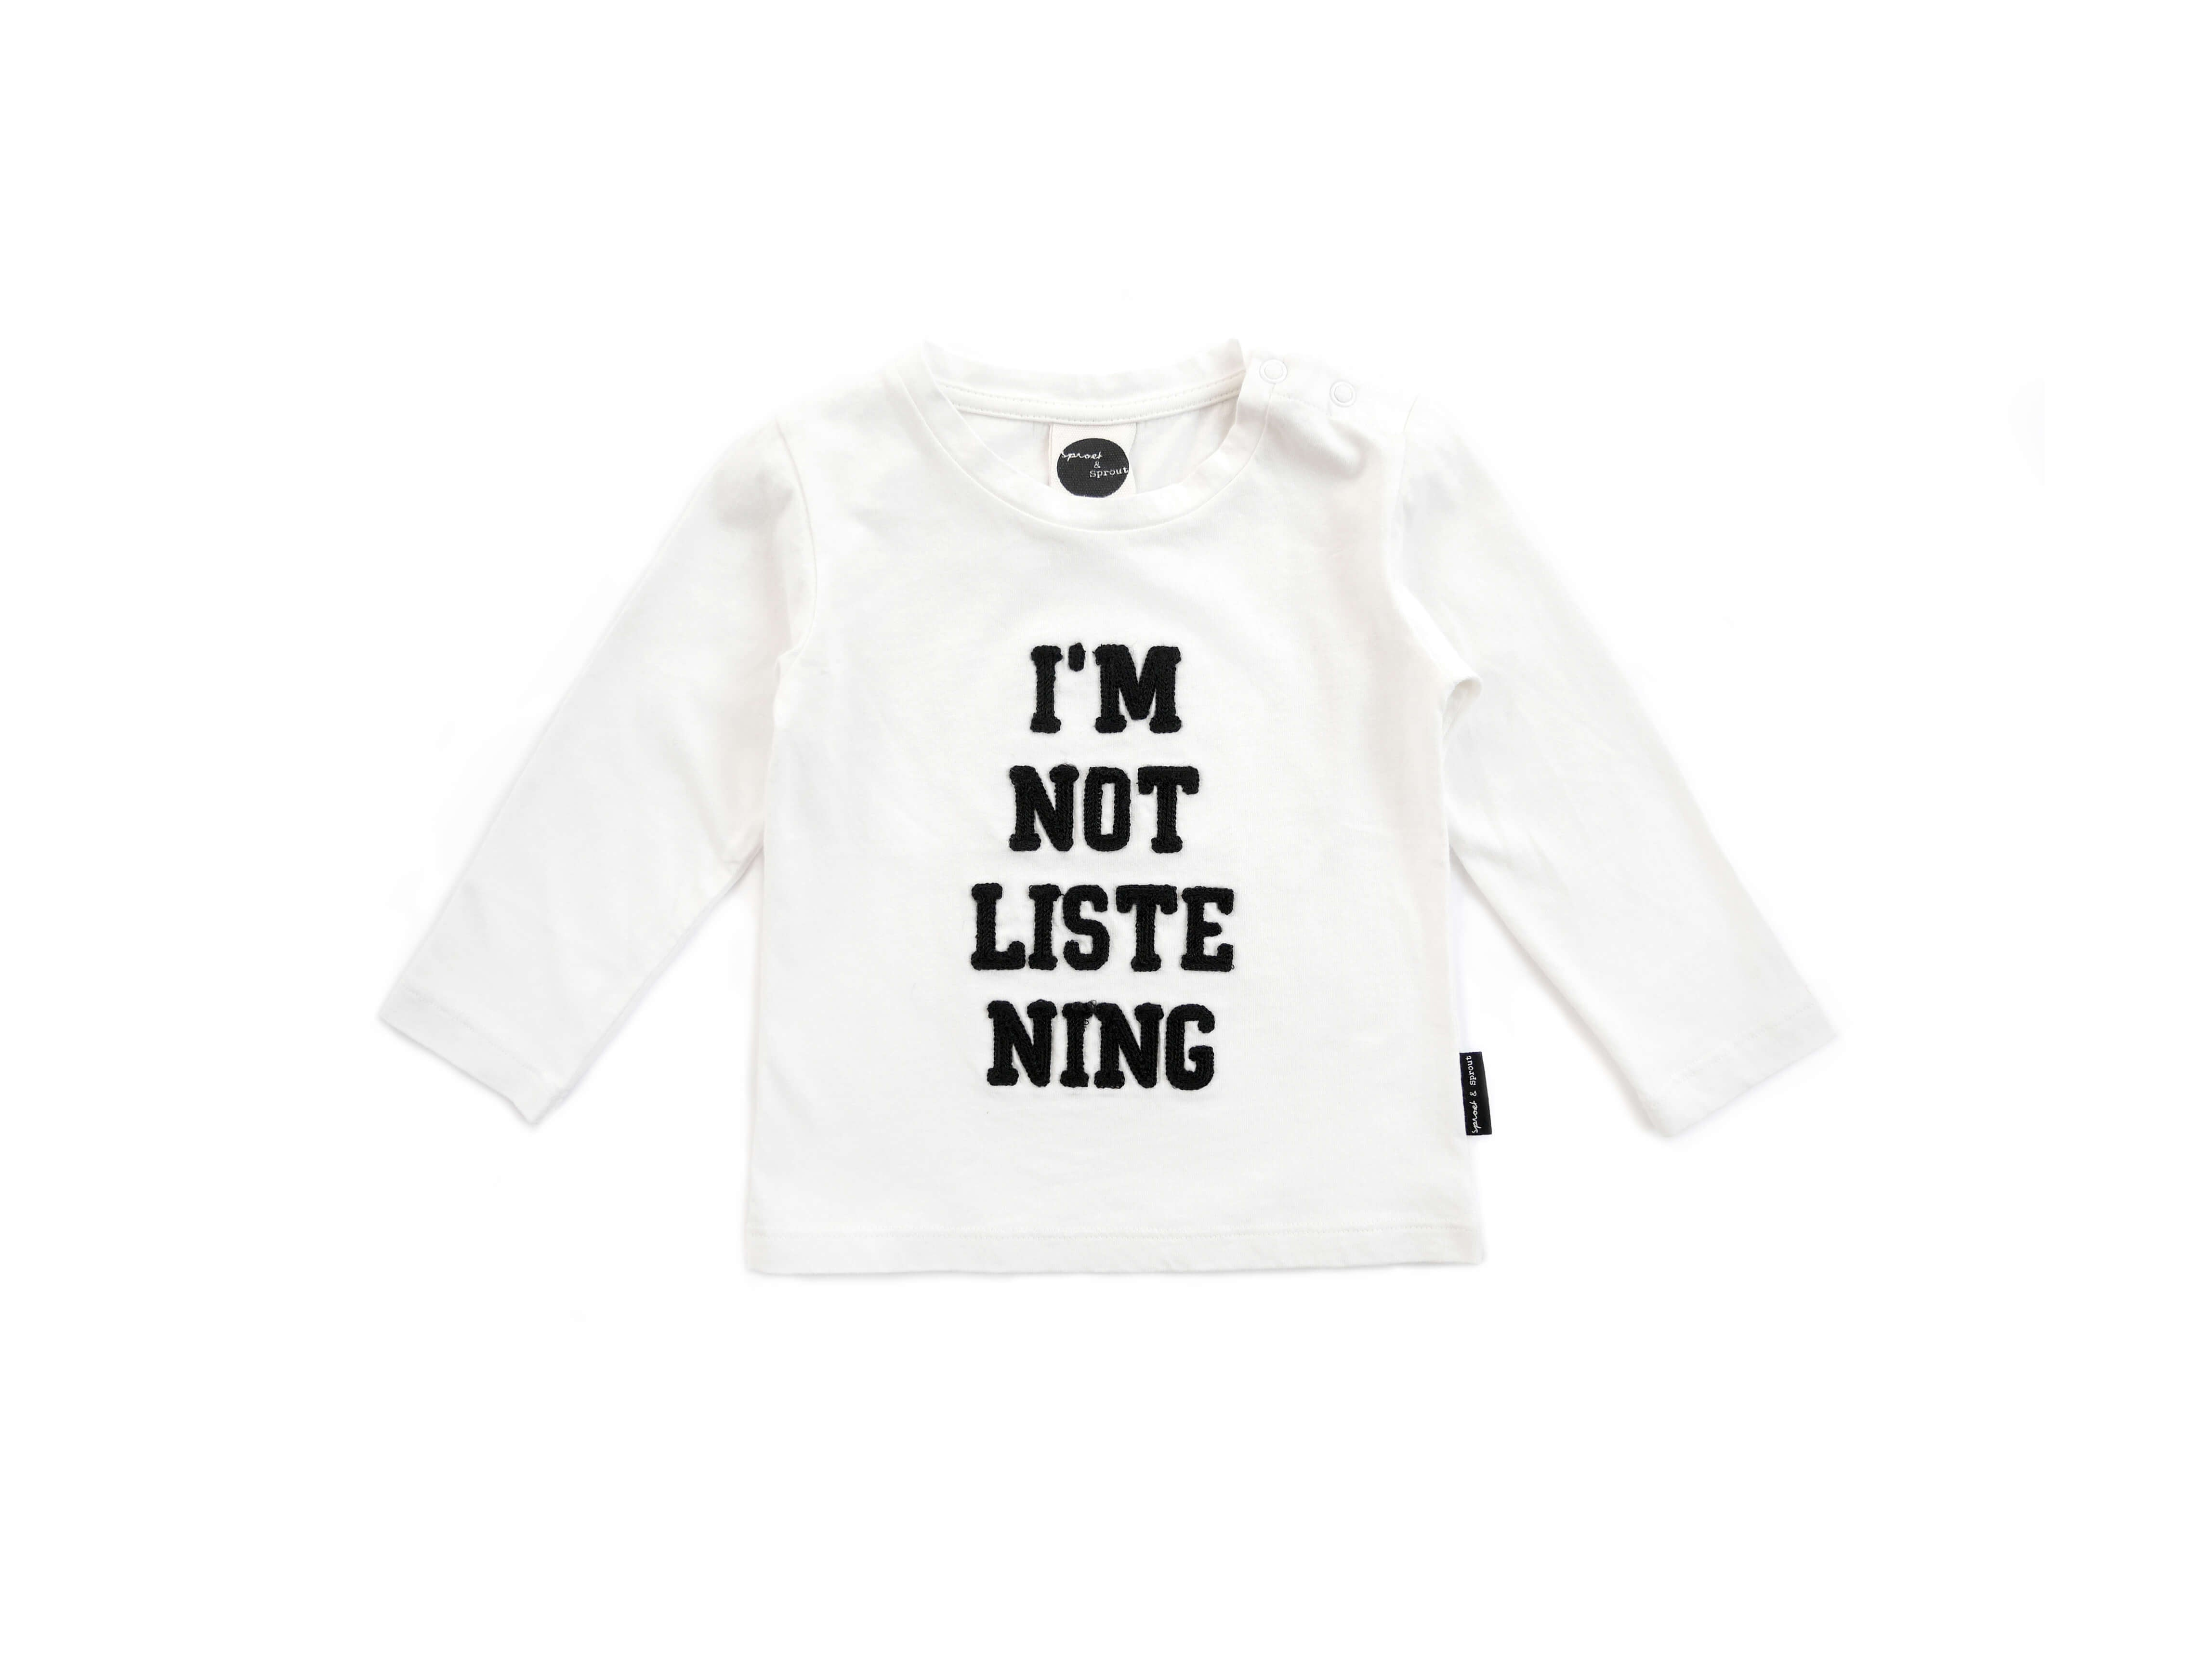 I'm Not Listening T-shirt (Limited Edition)